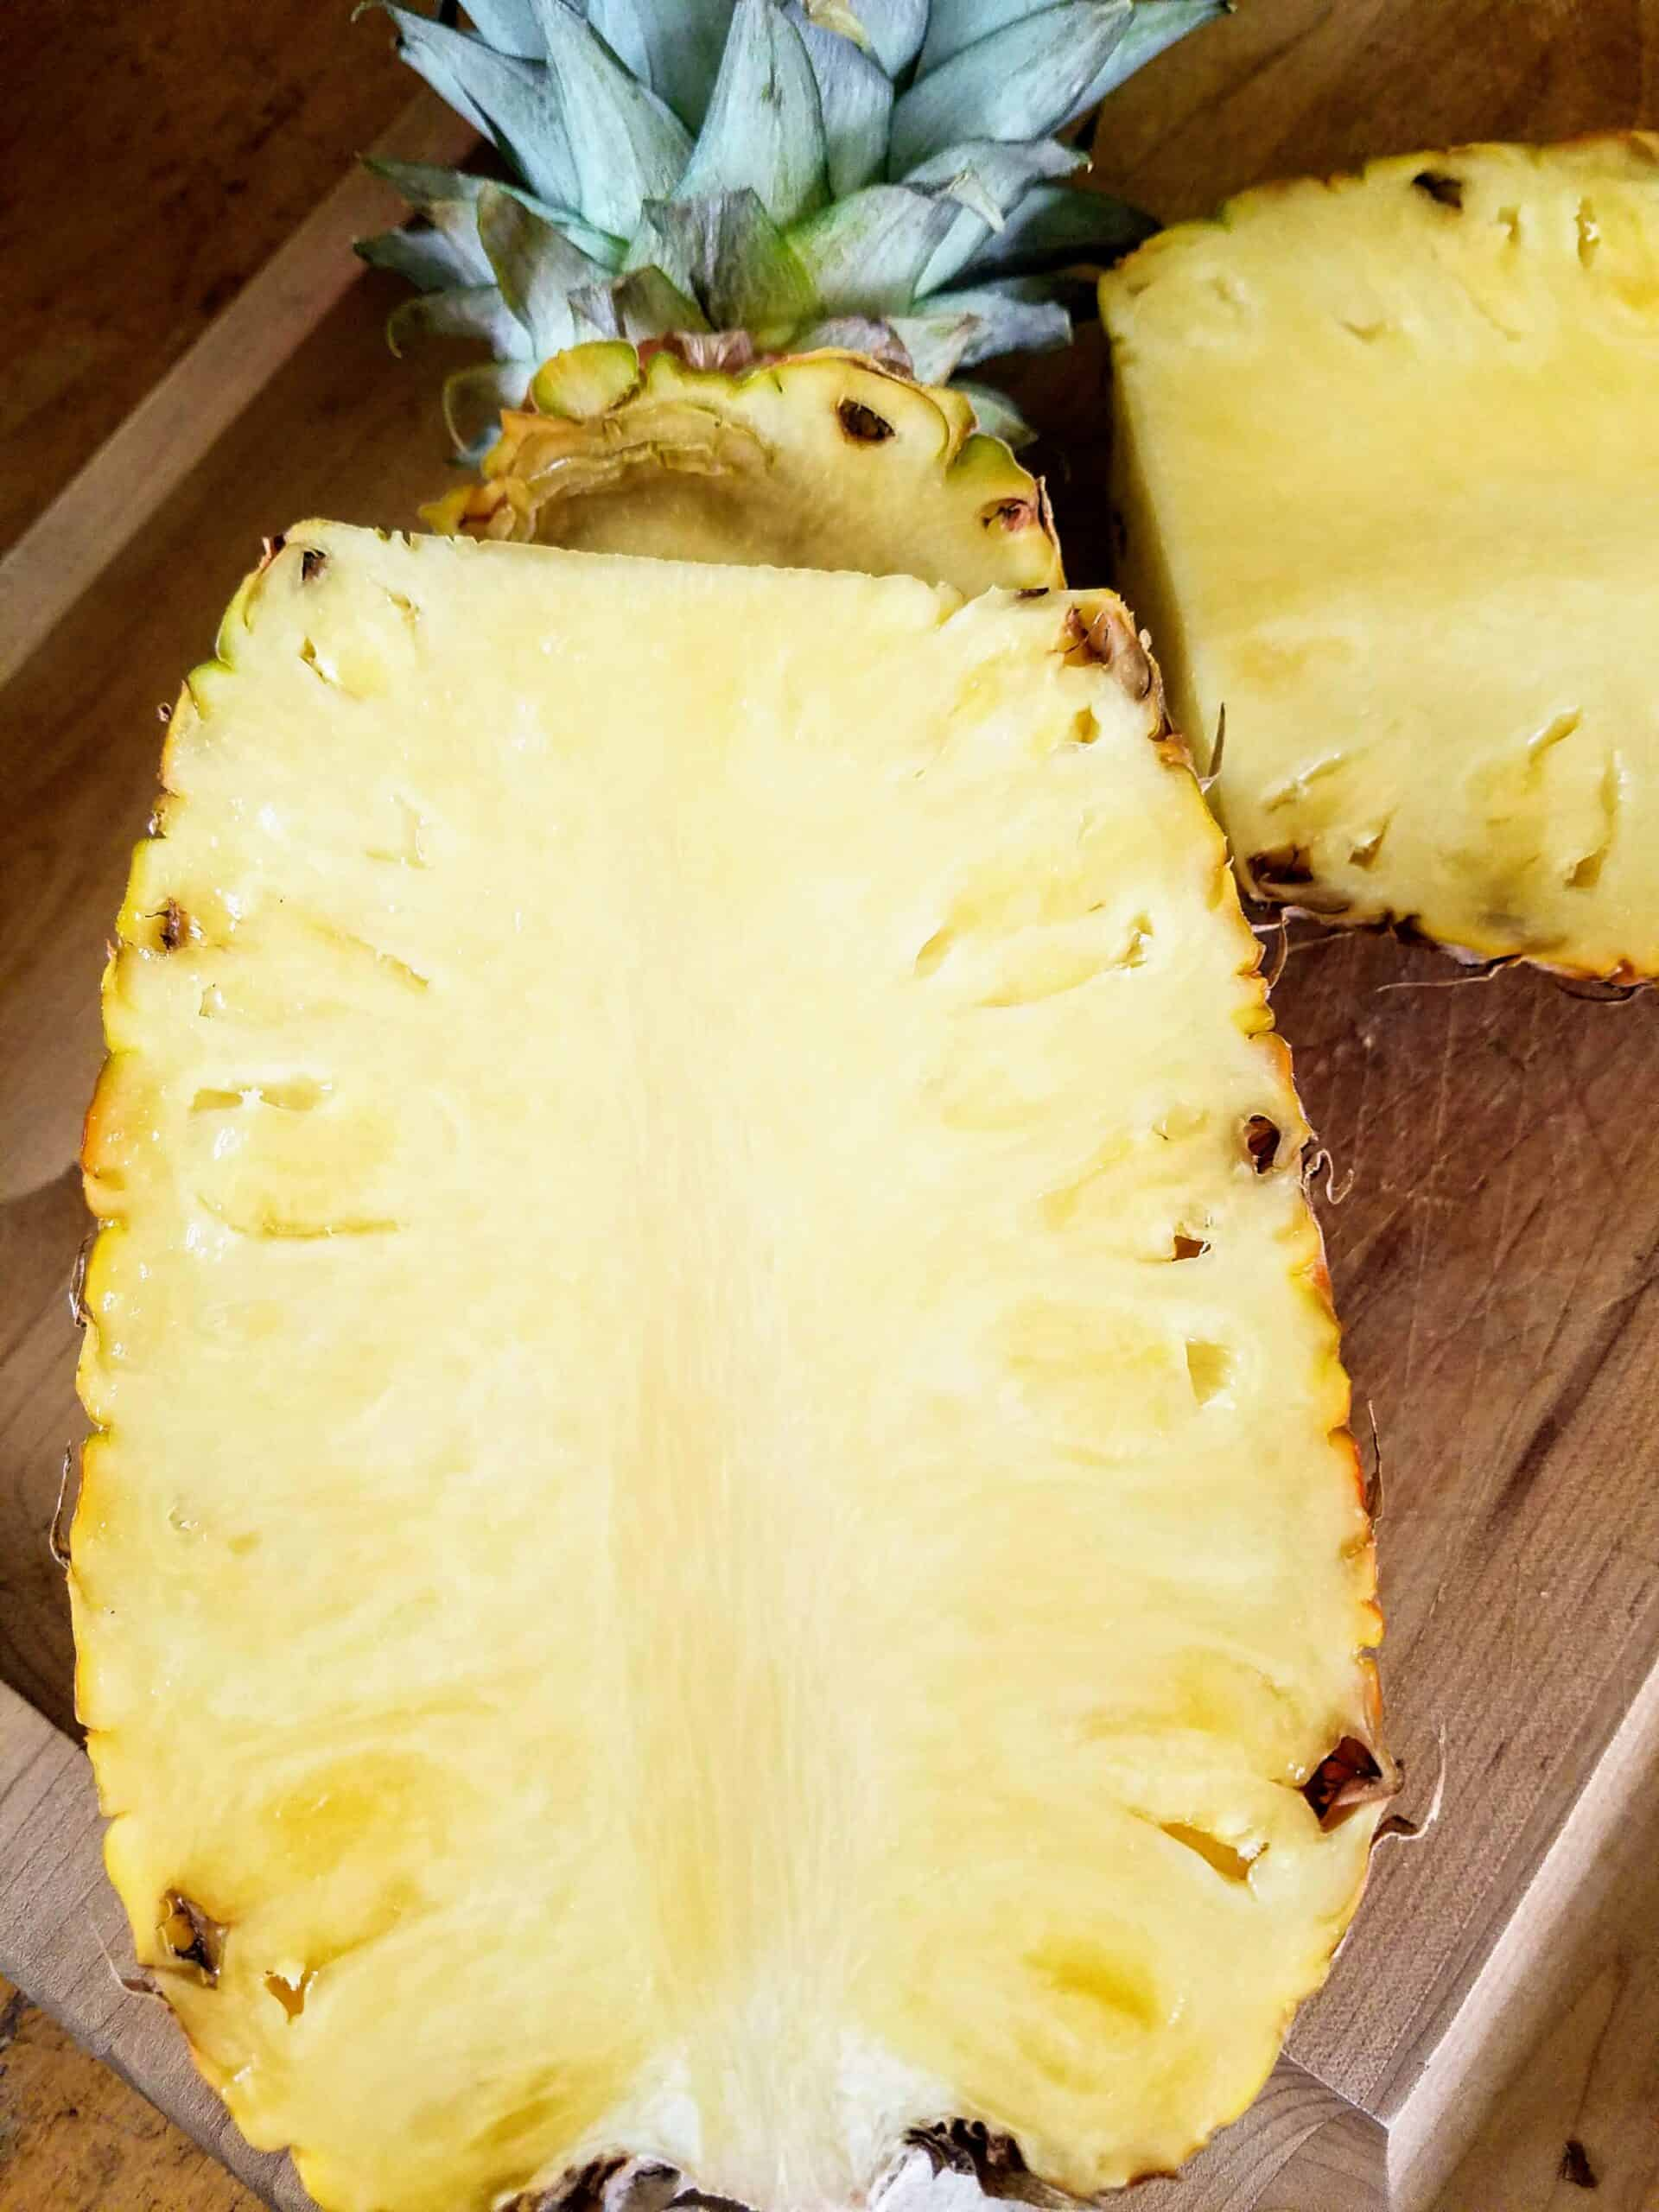 a half of a pineapple frshly cut on cutting board